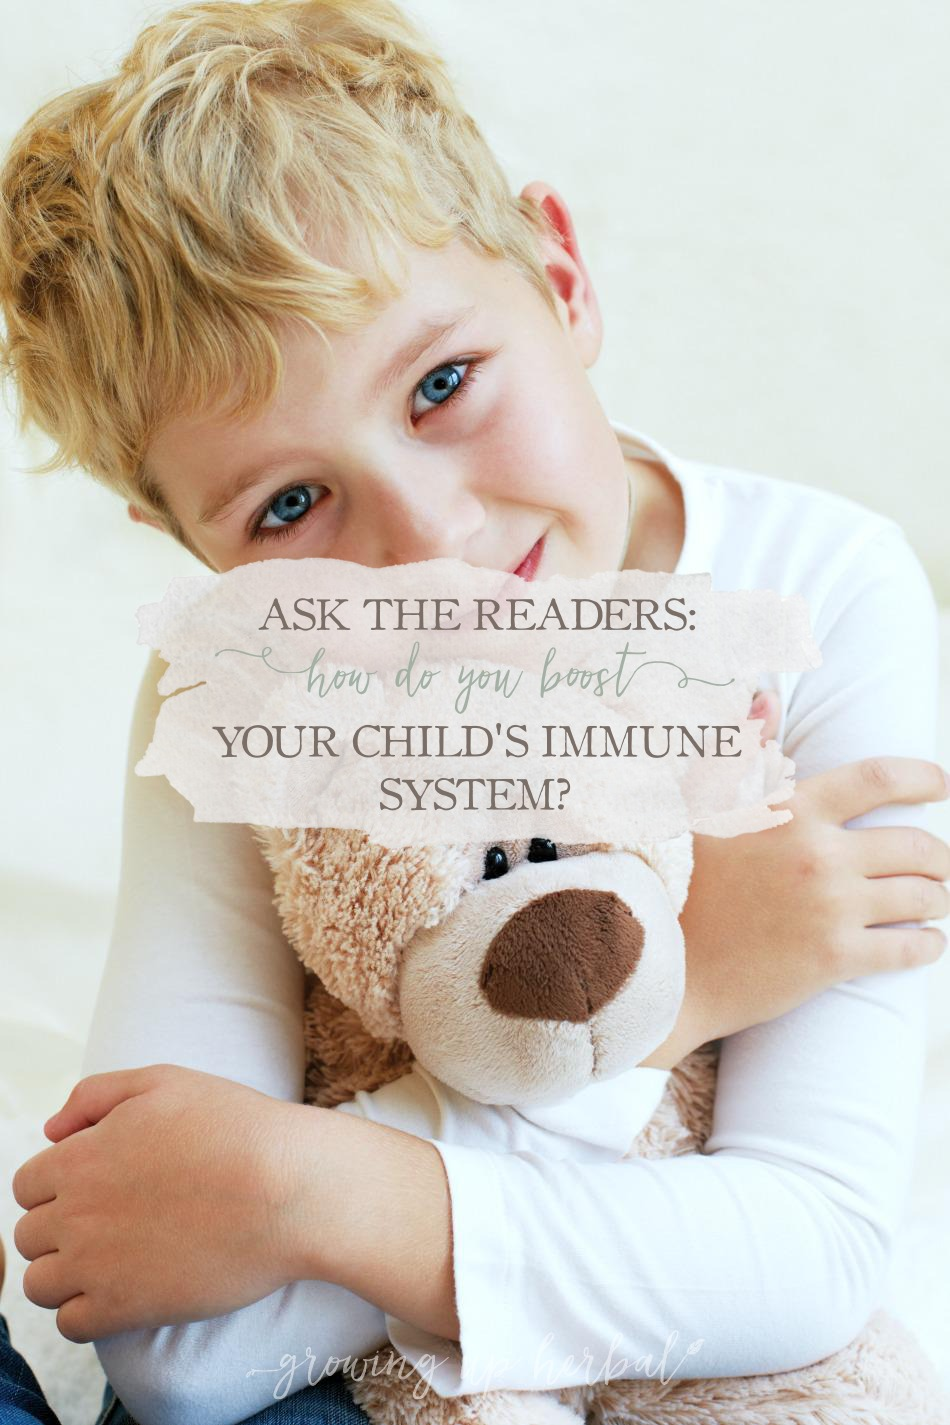 Ask The Readers: How Do You Boost Your Child's Immune System? | Growing Up Herbal | So tell me, how do you boost your child's immune system?